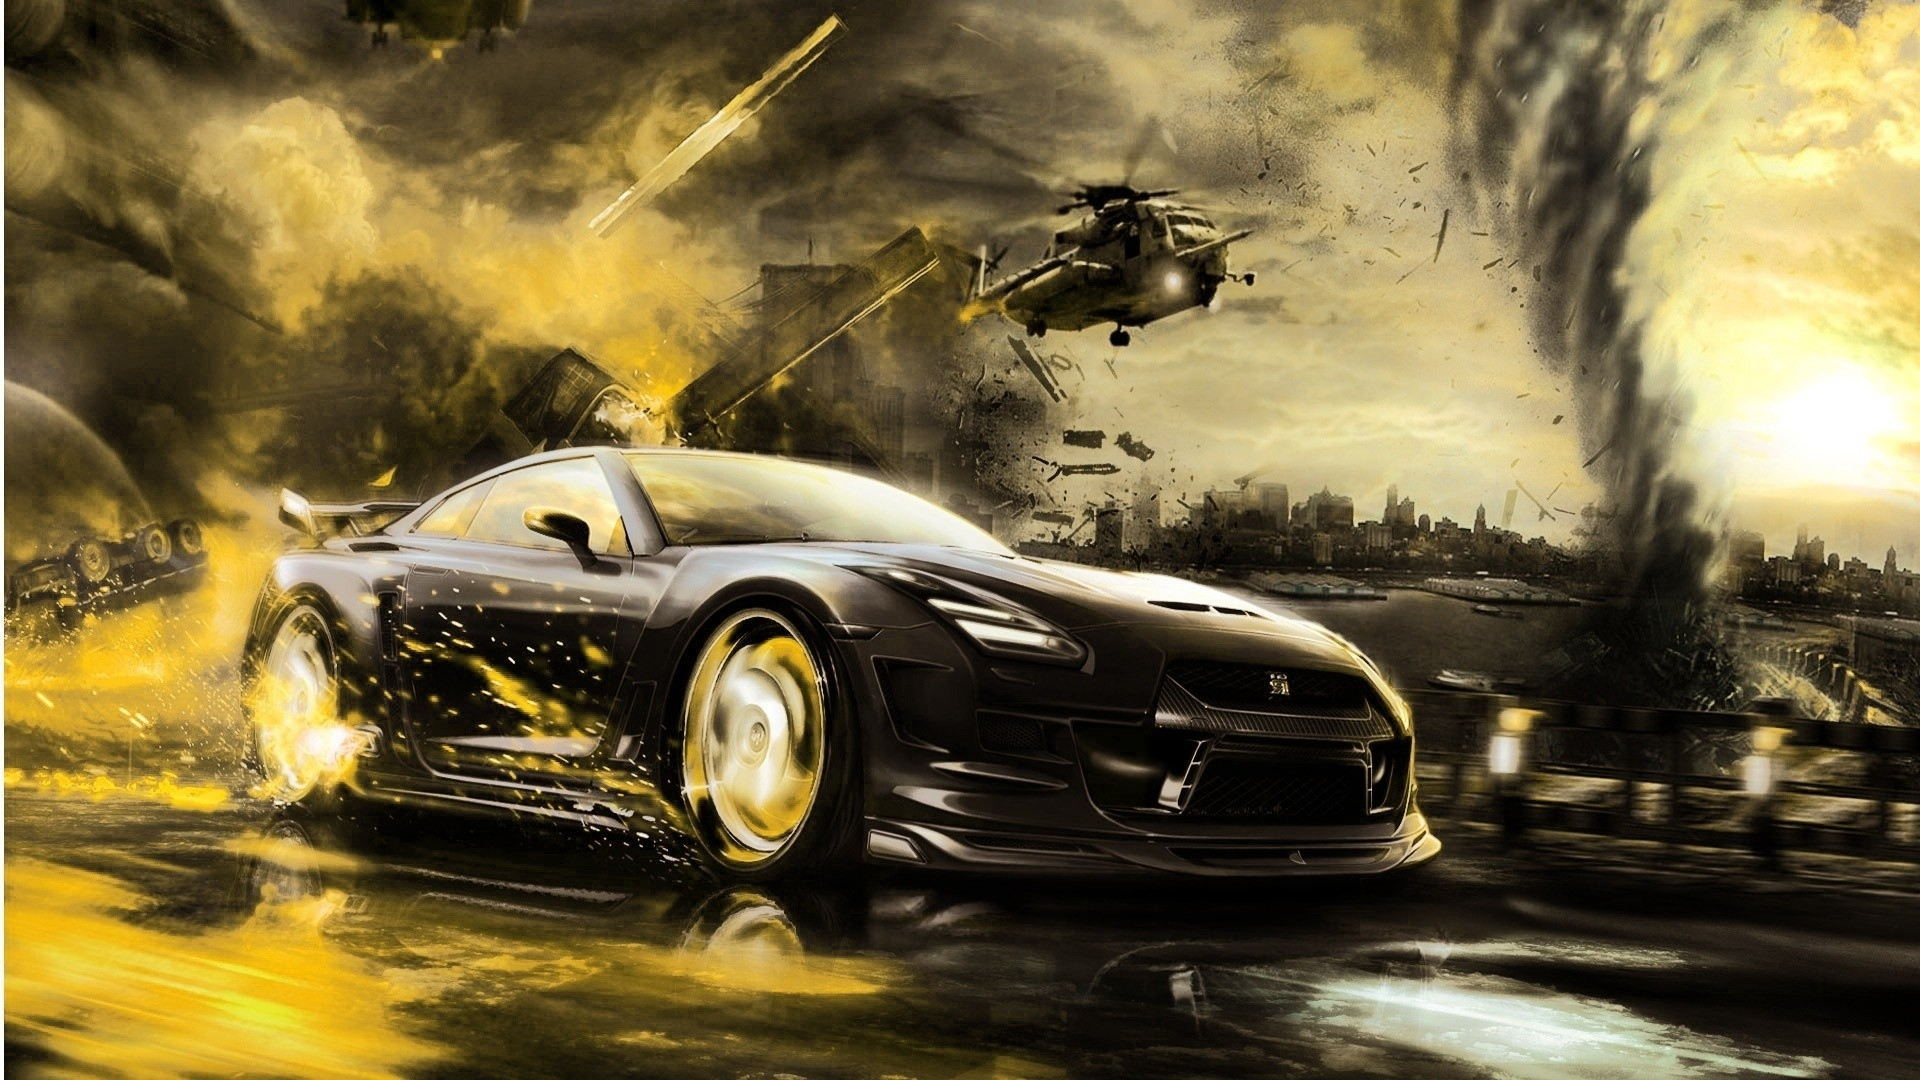 cool car wallpapers hd 1080p (72+ images)